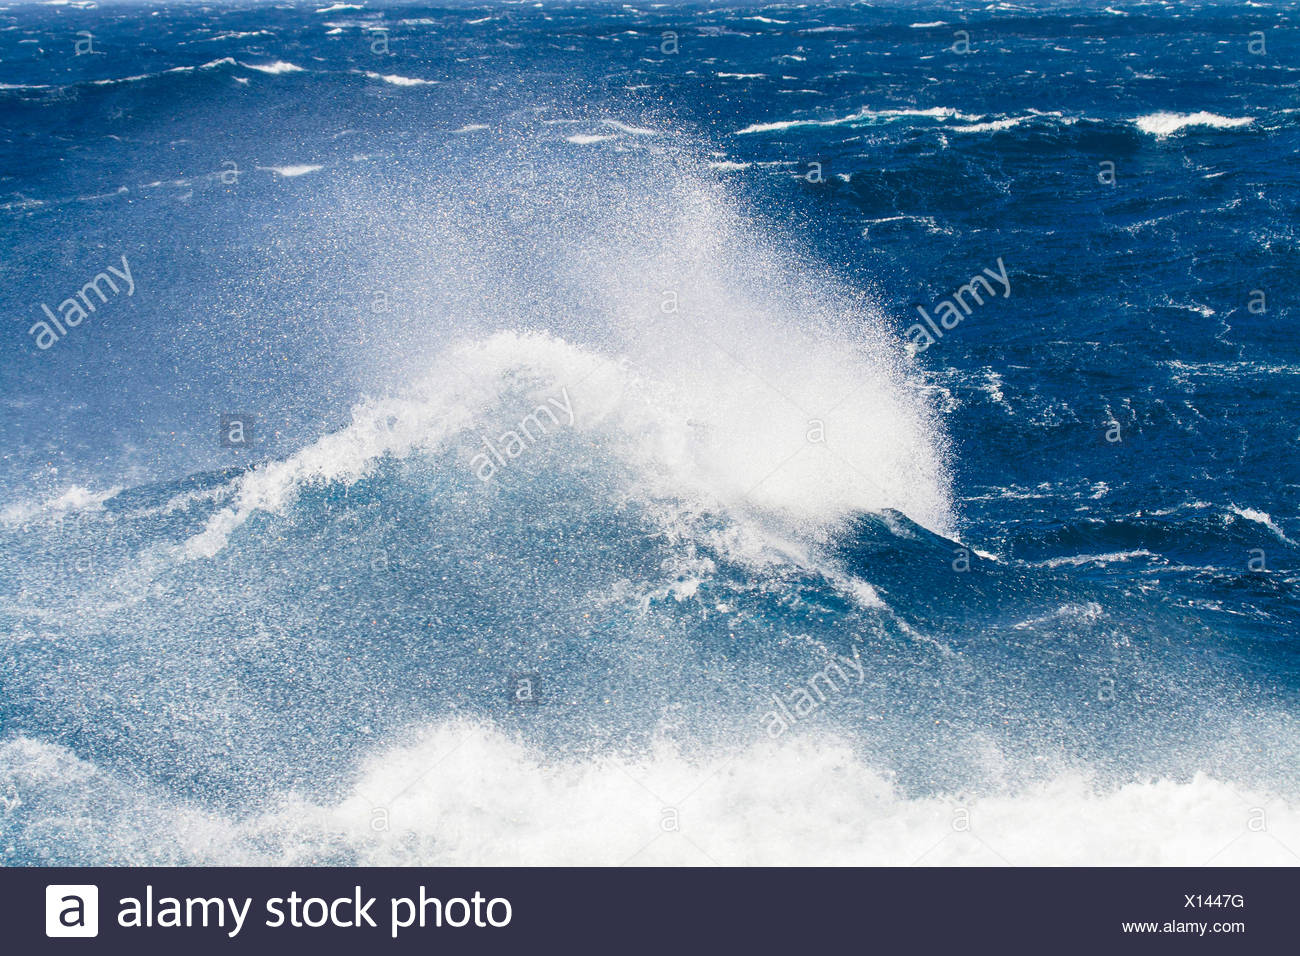 waves of the Southern Ocean at South Georgia in the Subantarctic, Suedgeorgien - Stock Image